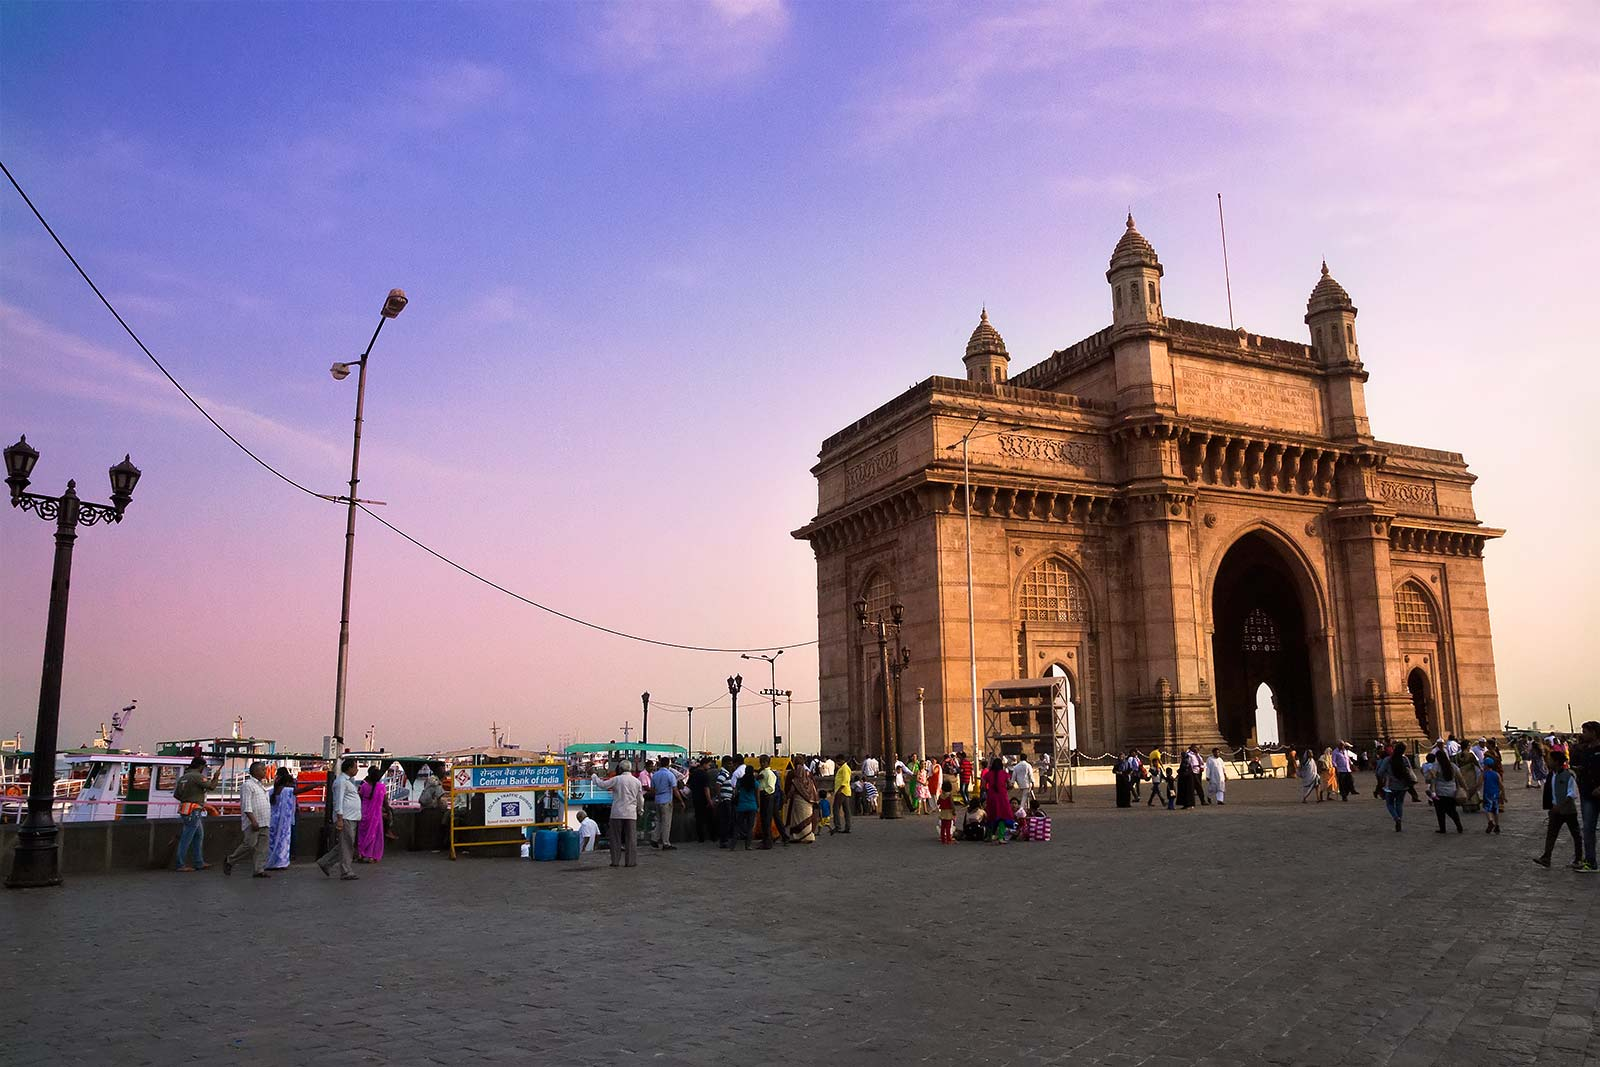 The Gateway of India was erected to commemorate the landing of King George V and Queen Mary when they visited India in 1911. Today, it is one of India's most iconic structures.